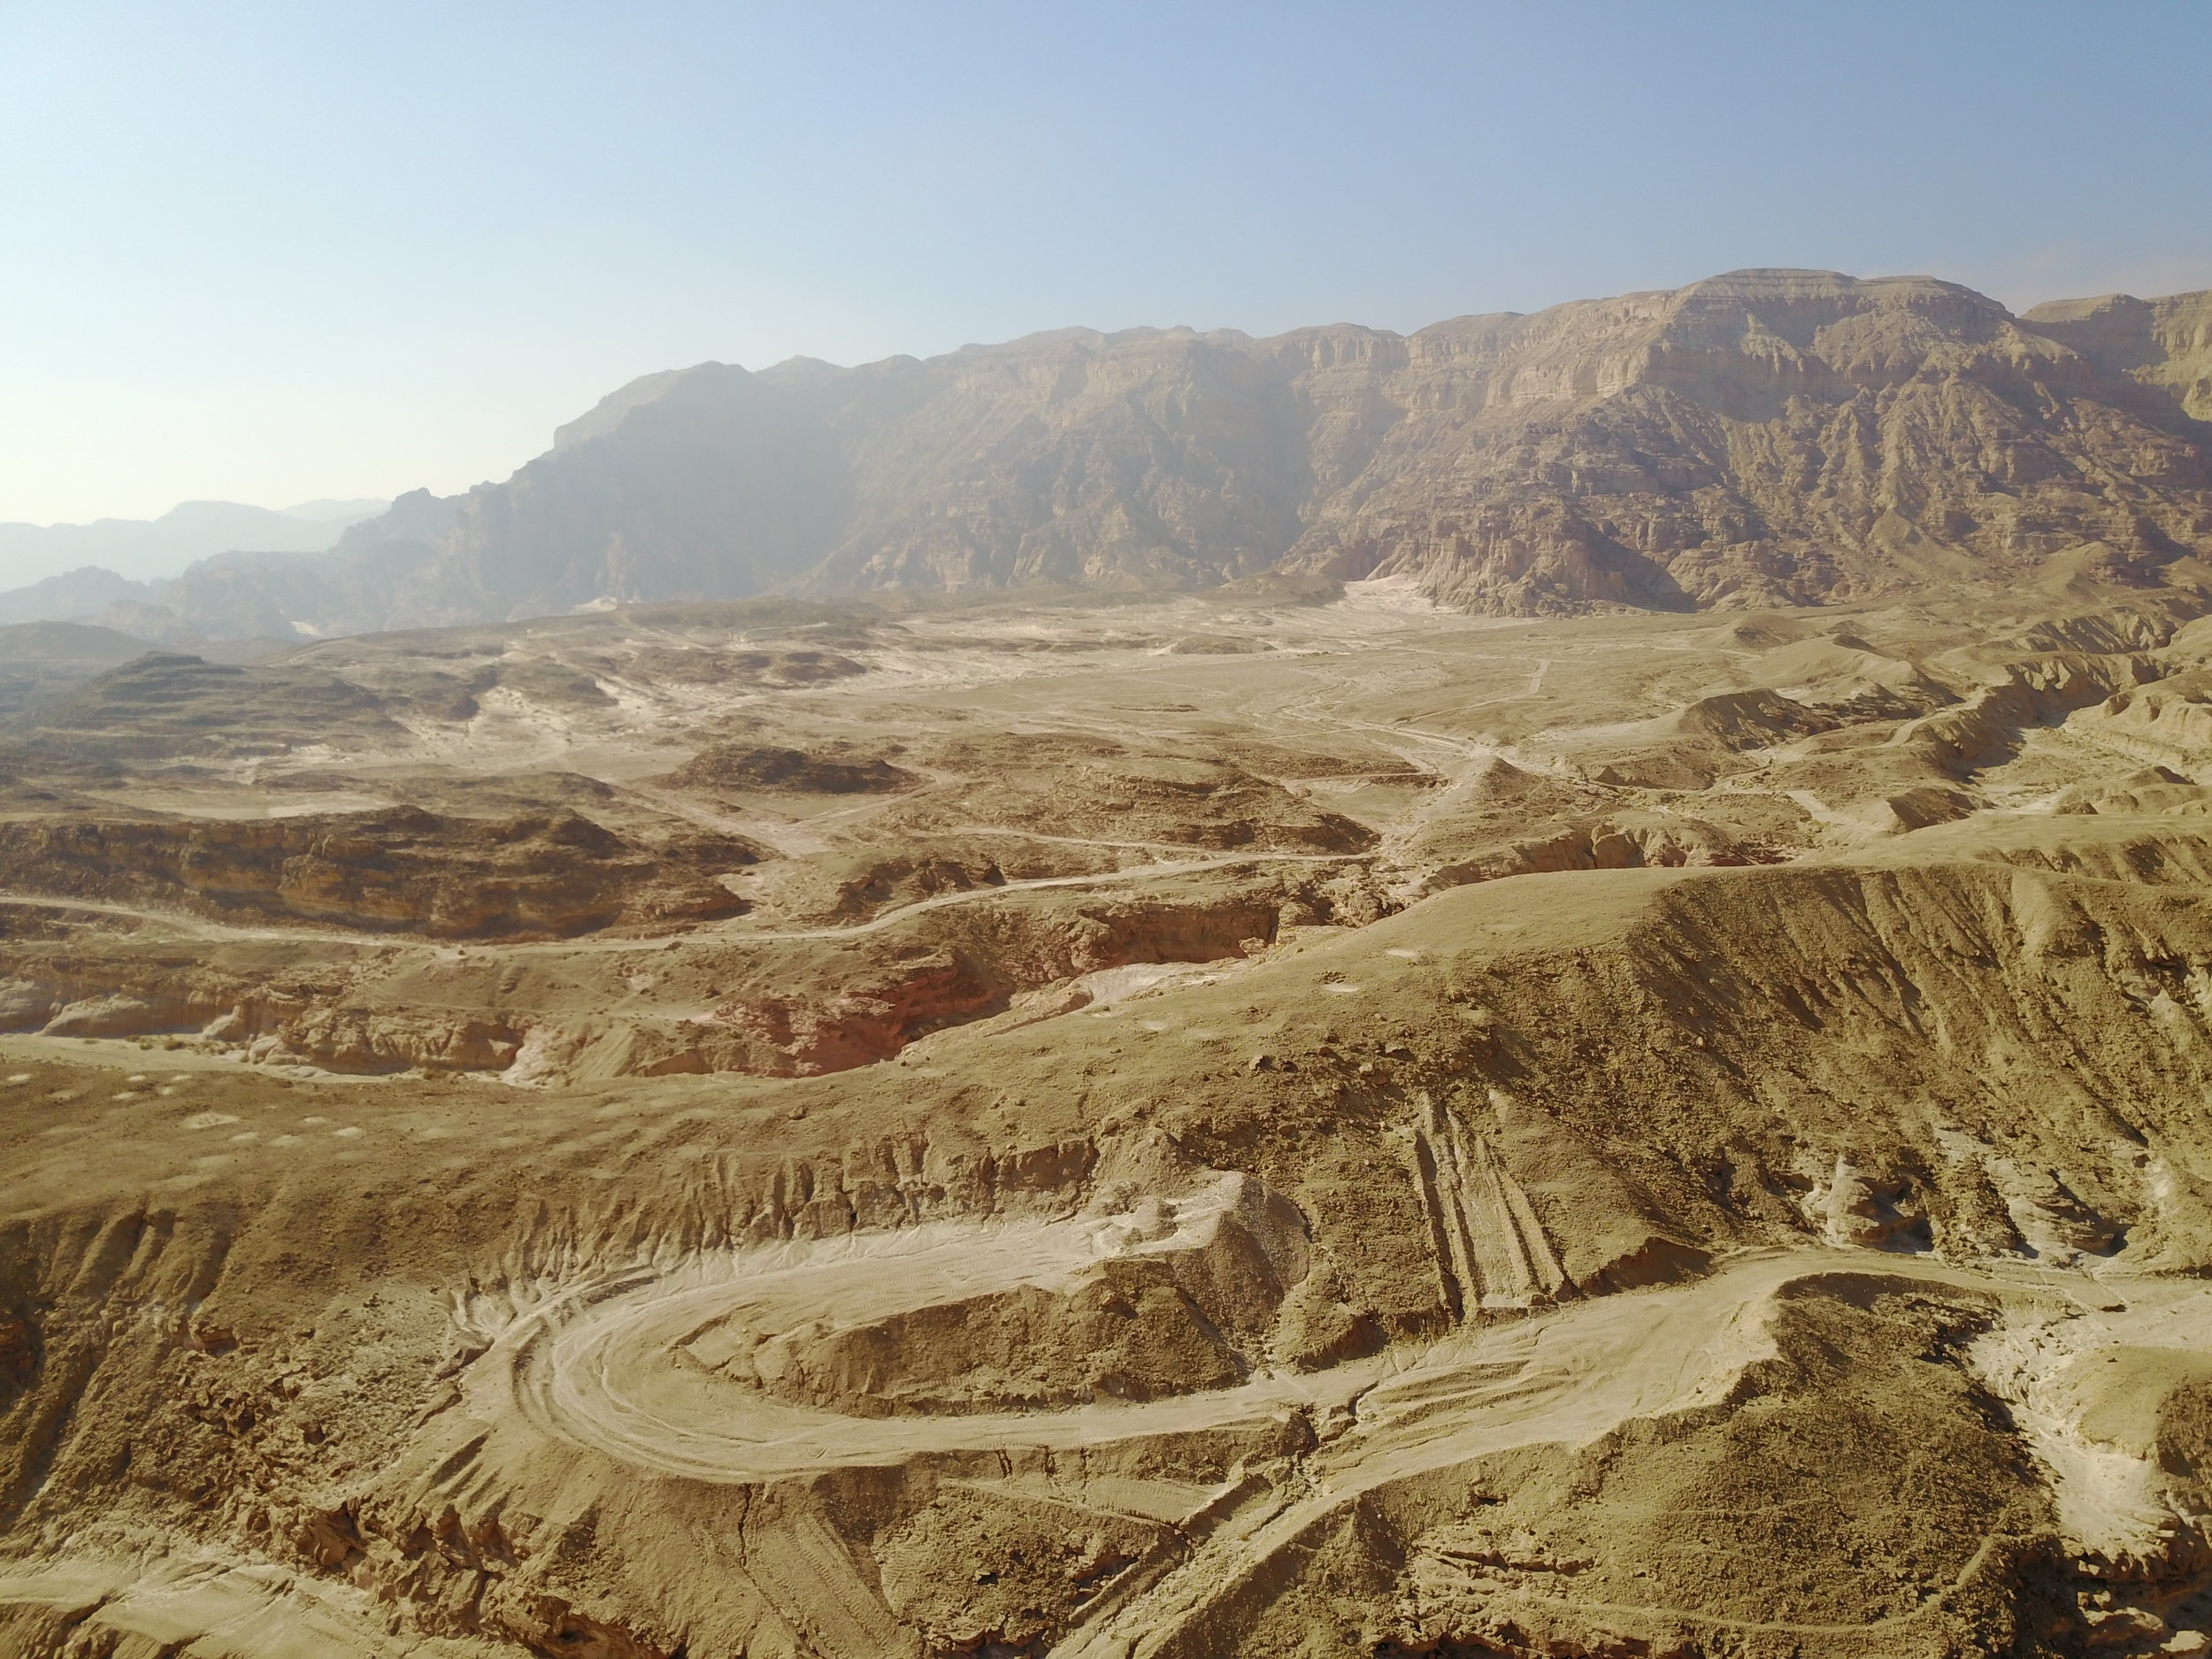 SOLOMON'S MINES and THE DEAD SEA MINES